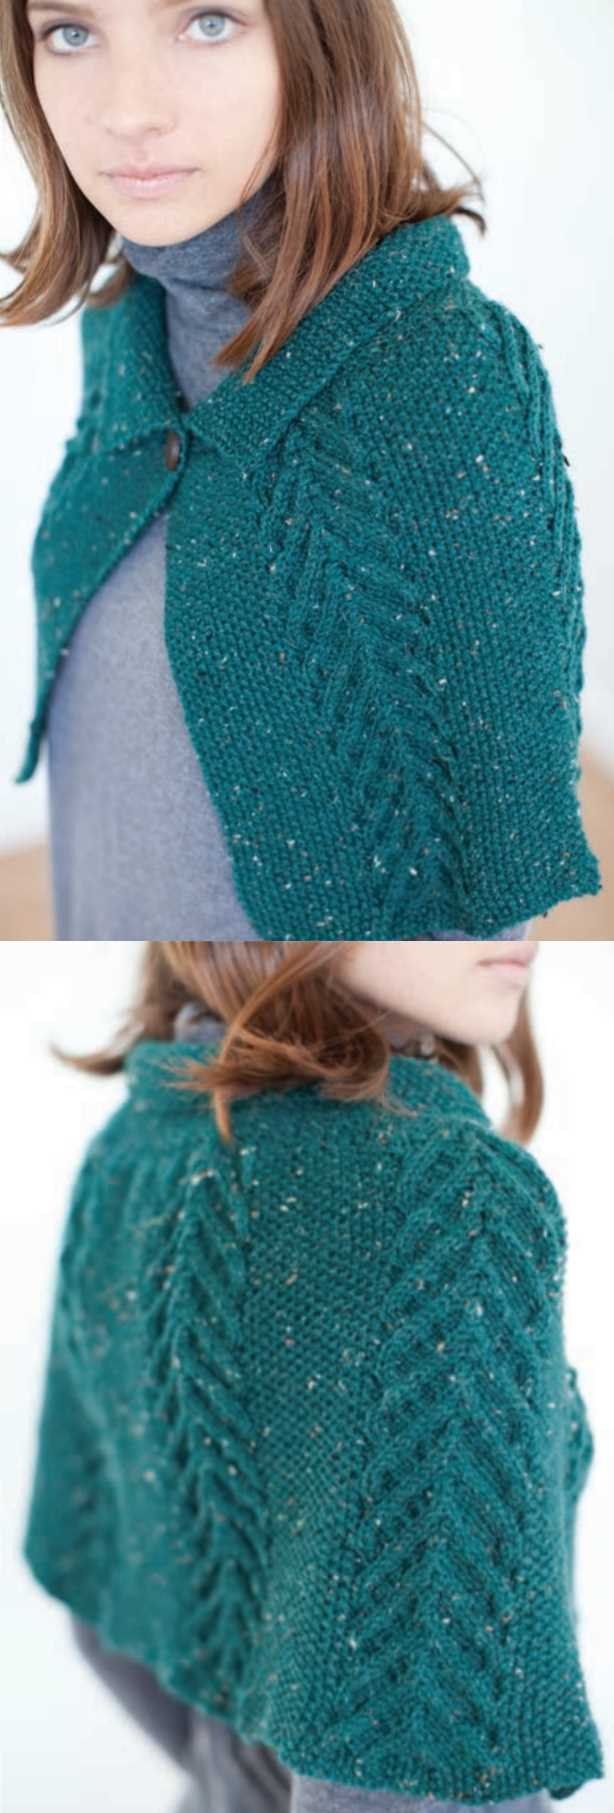 Free Knitting Pattern for a Tweed and Cable Cape.